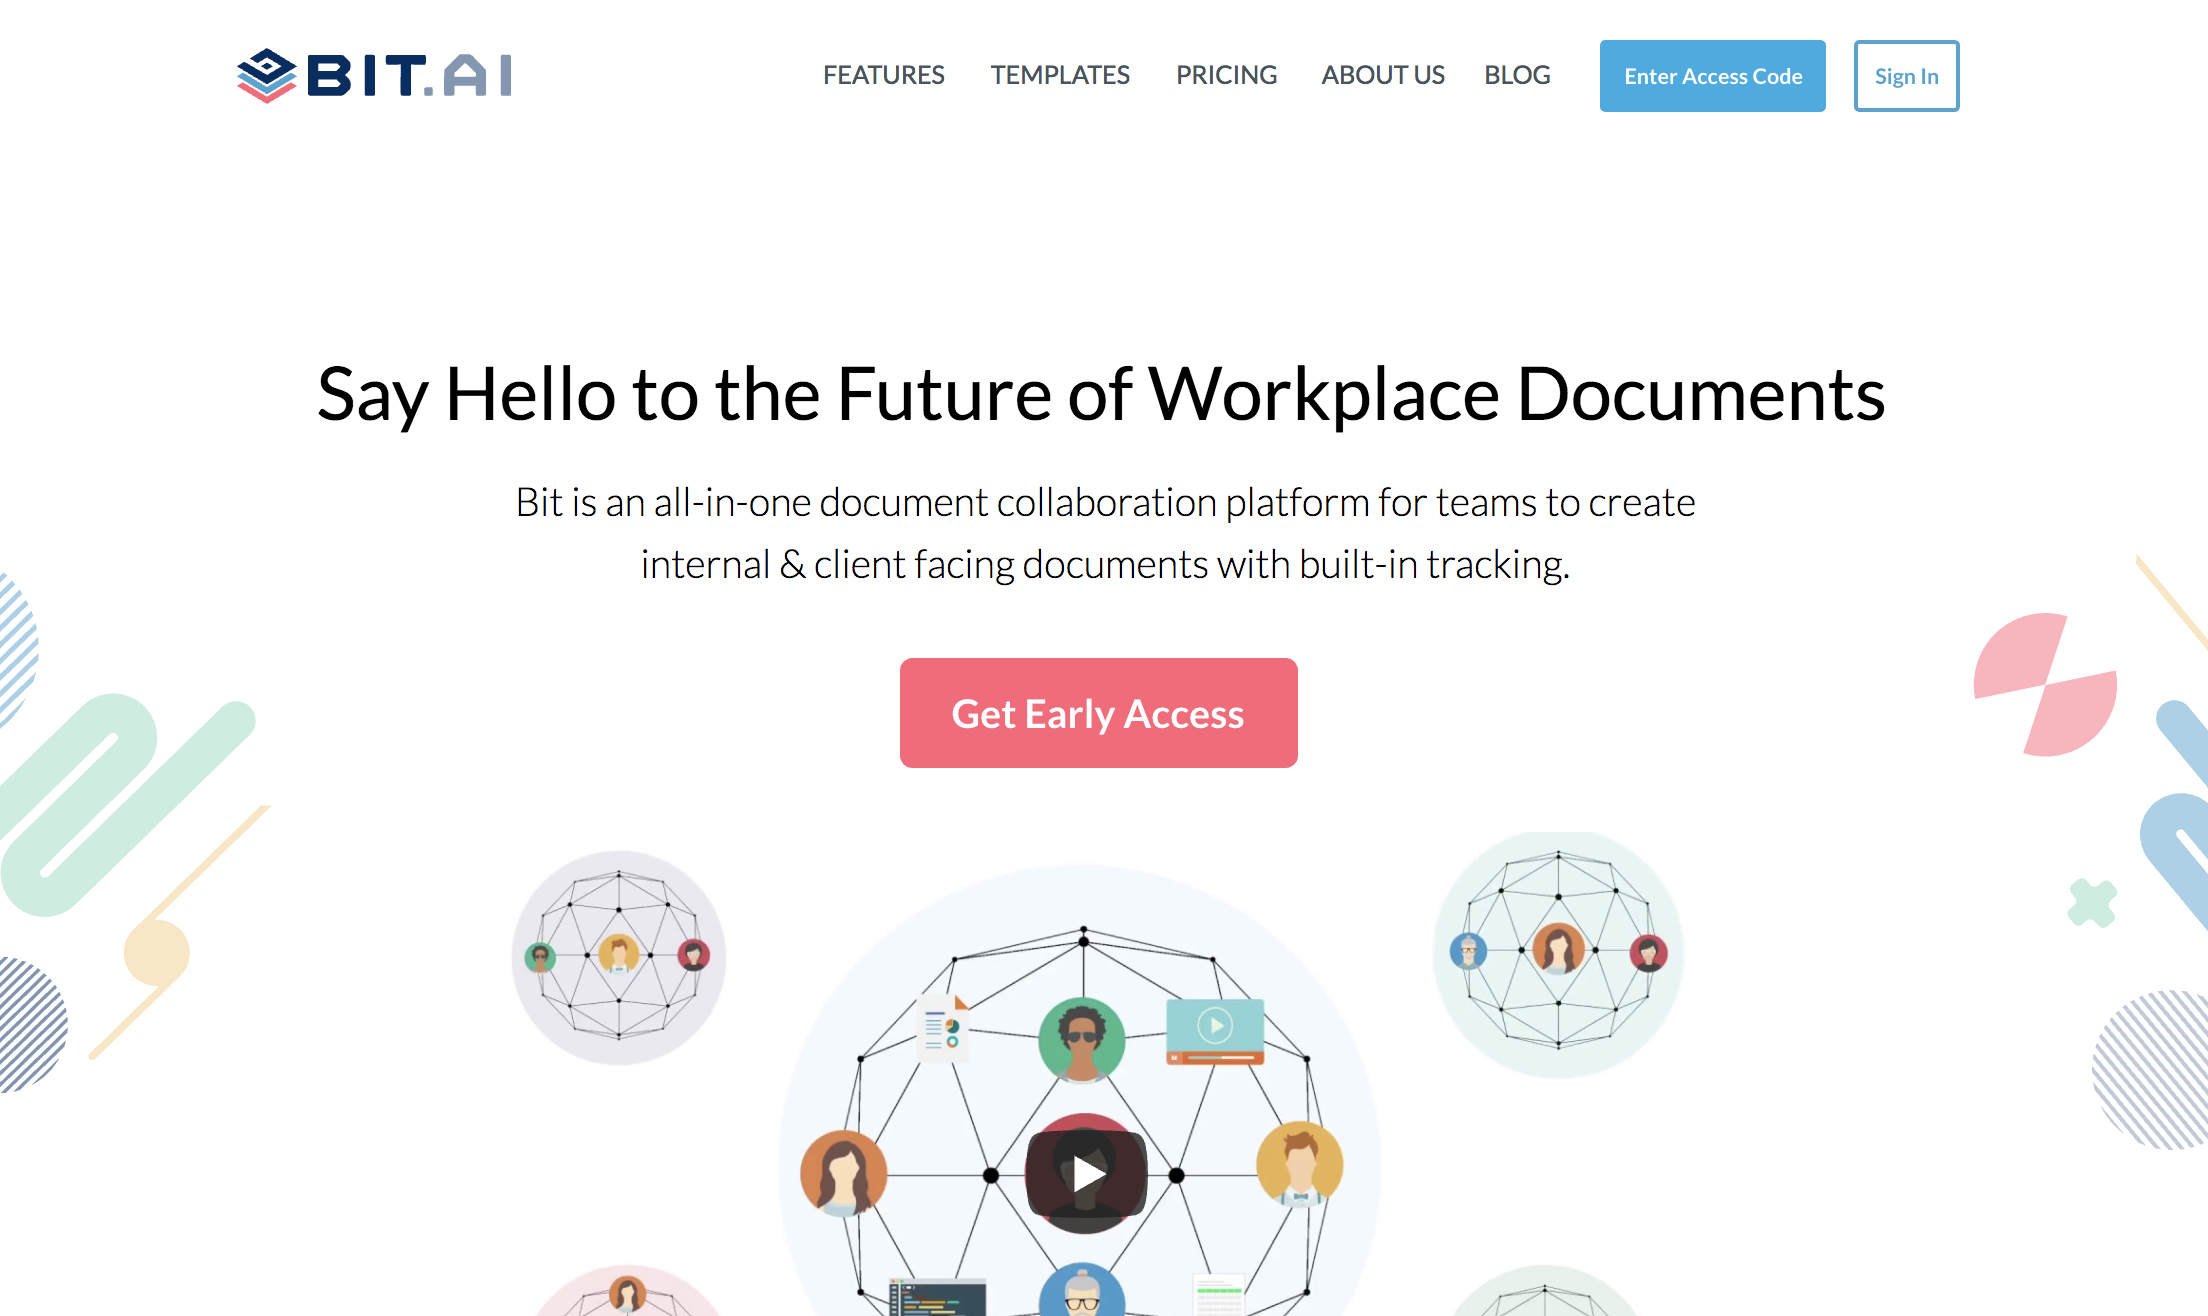 Bit.ai : Document management and collaboration tool